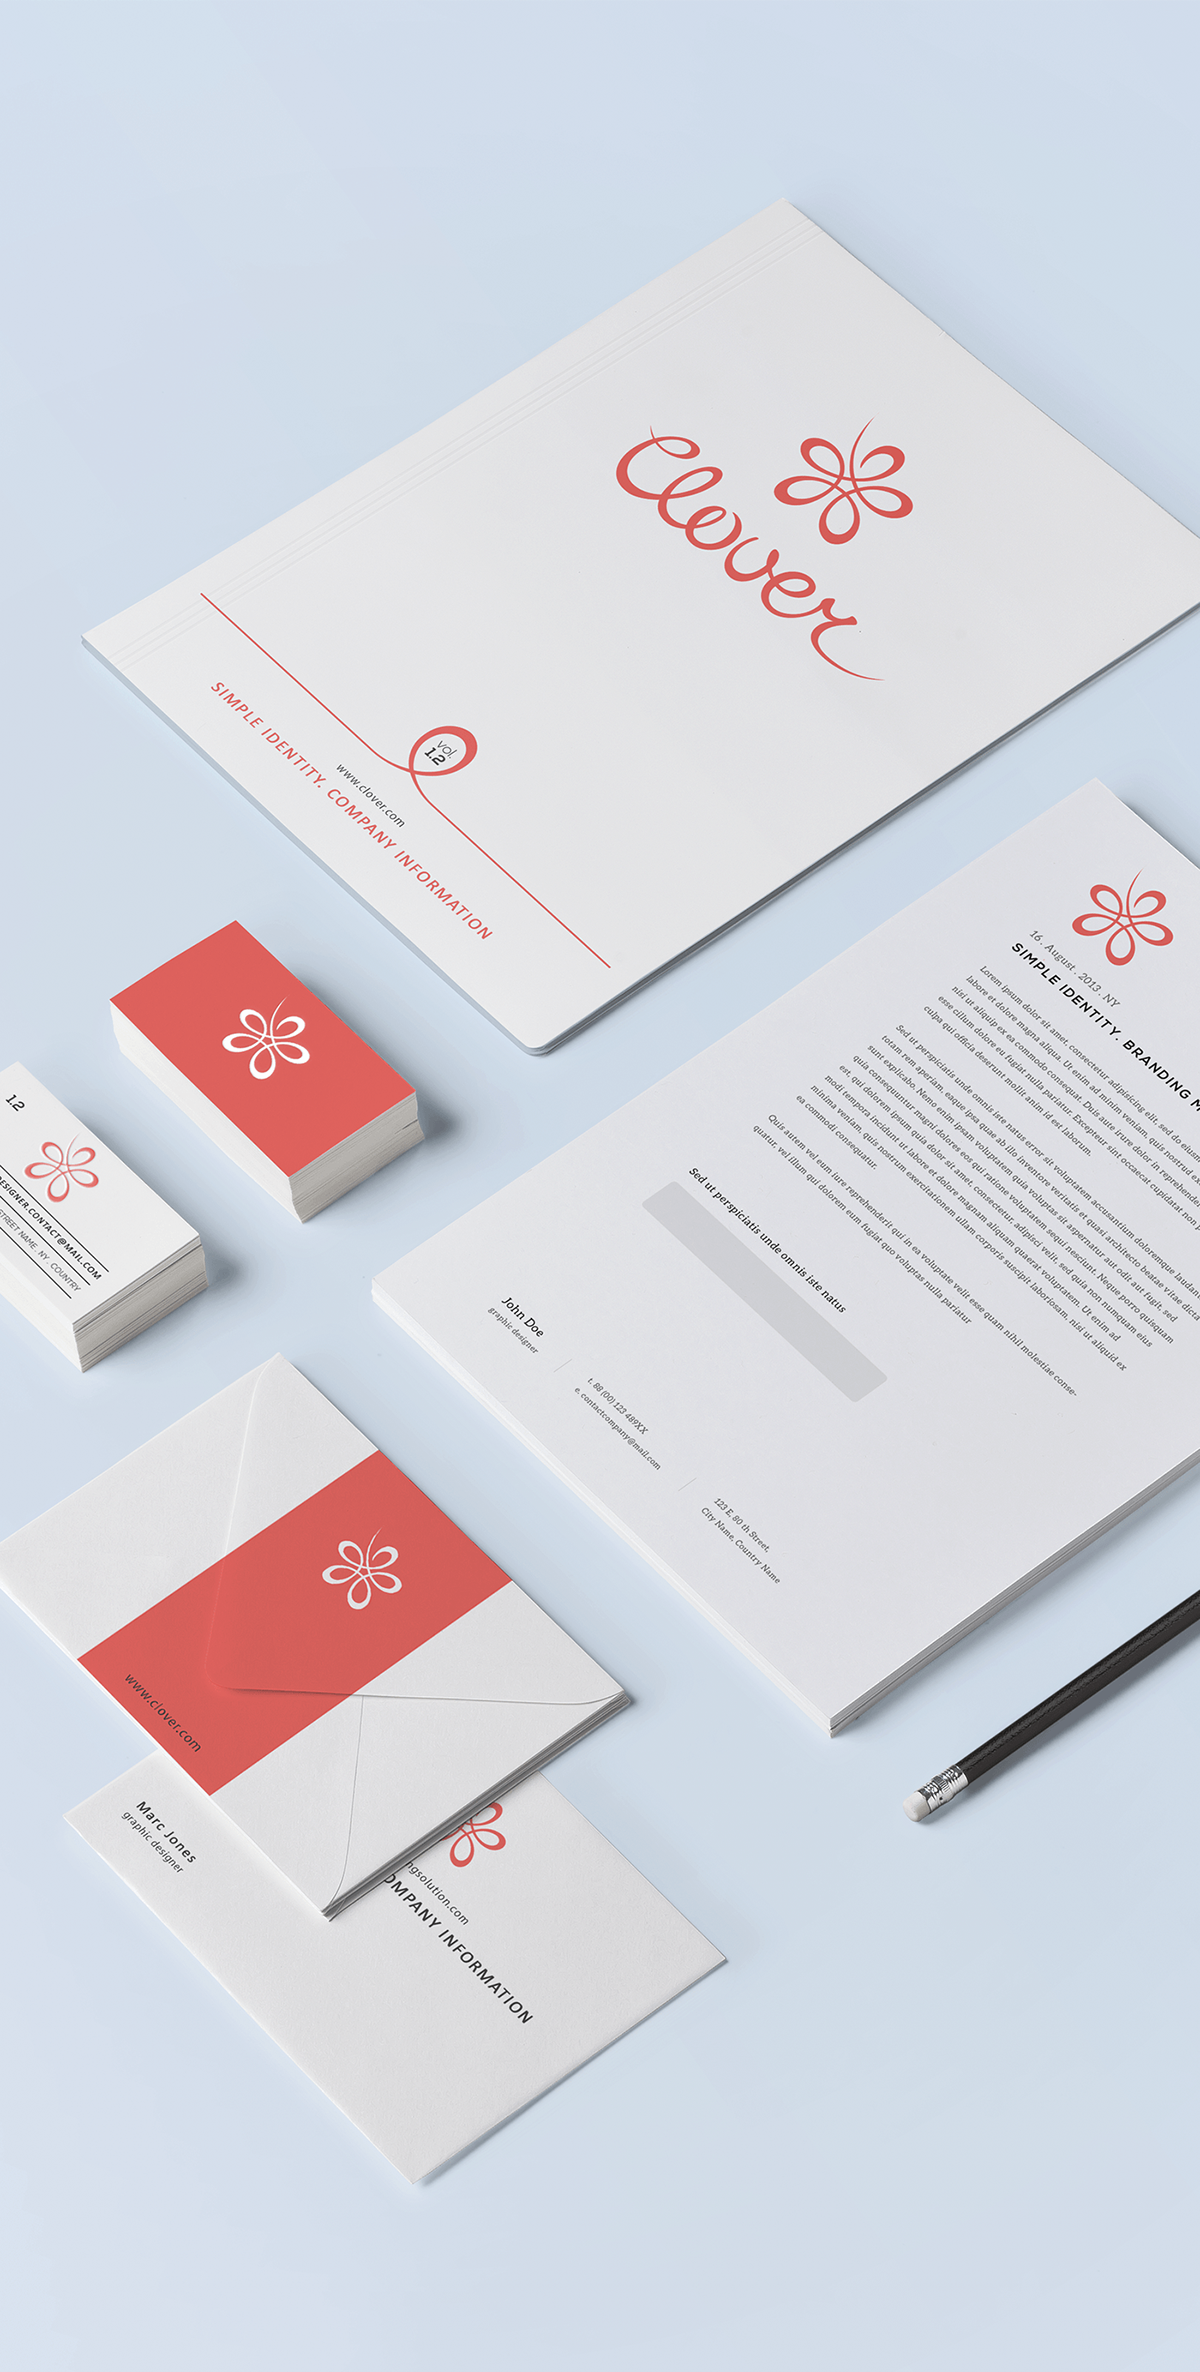 Brand Identity Design on Branding Served